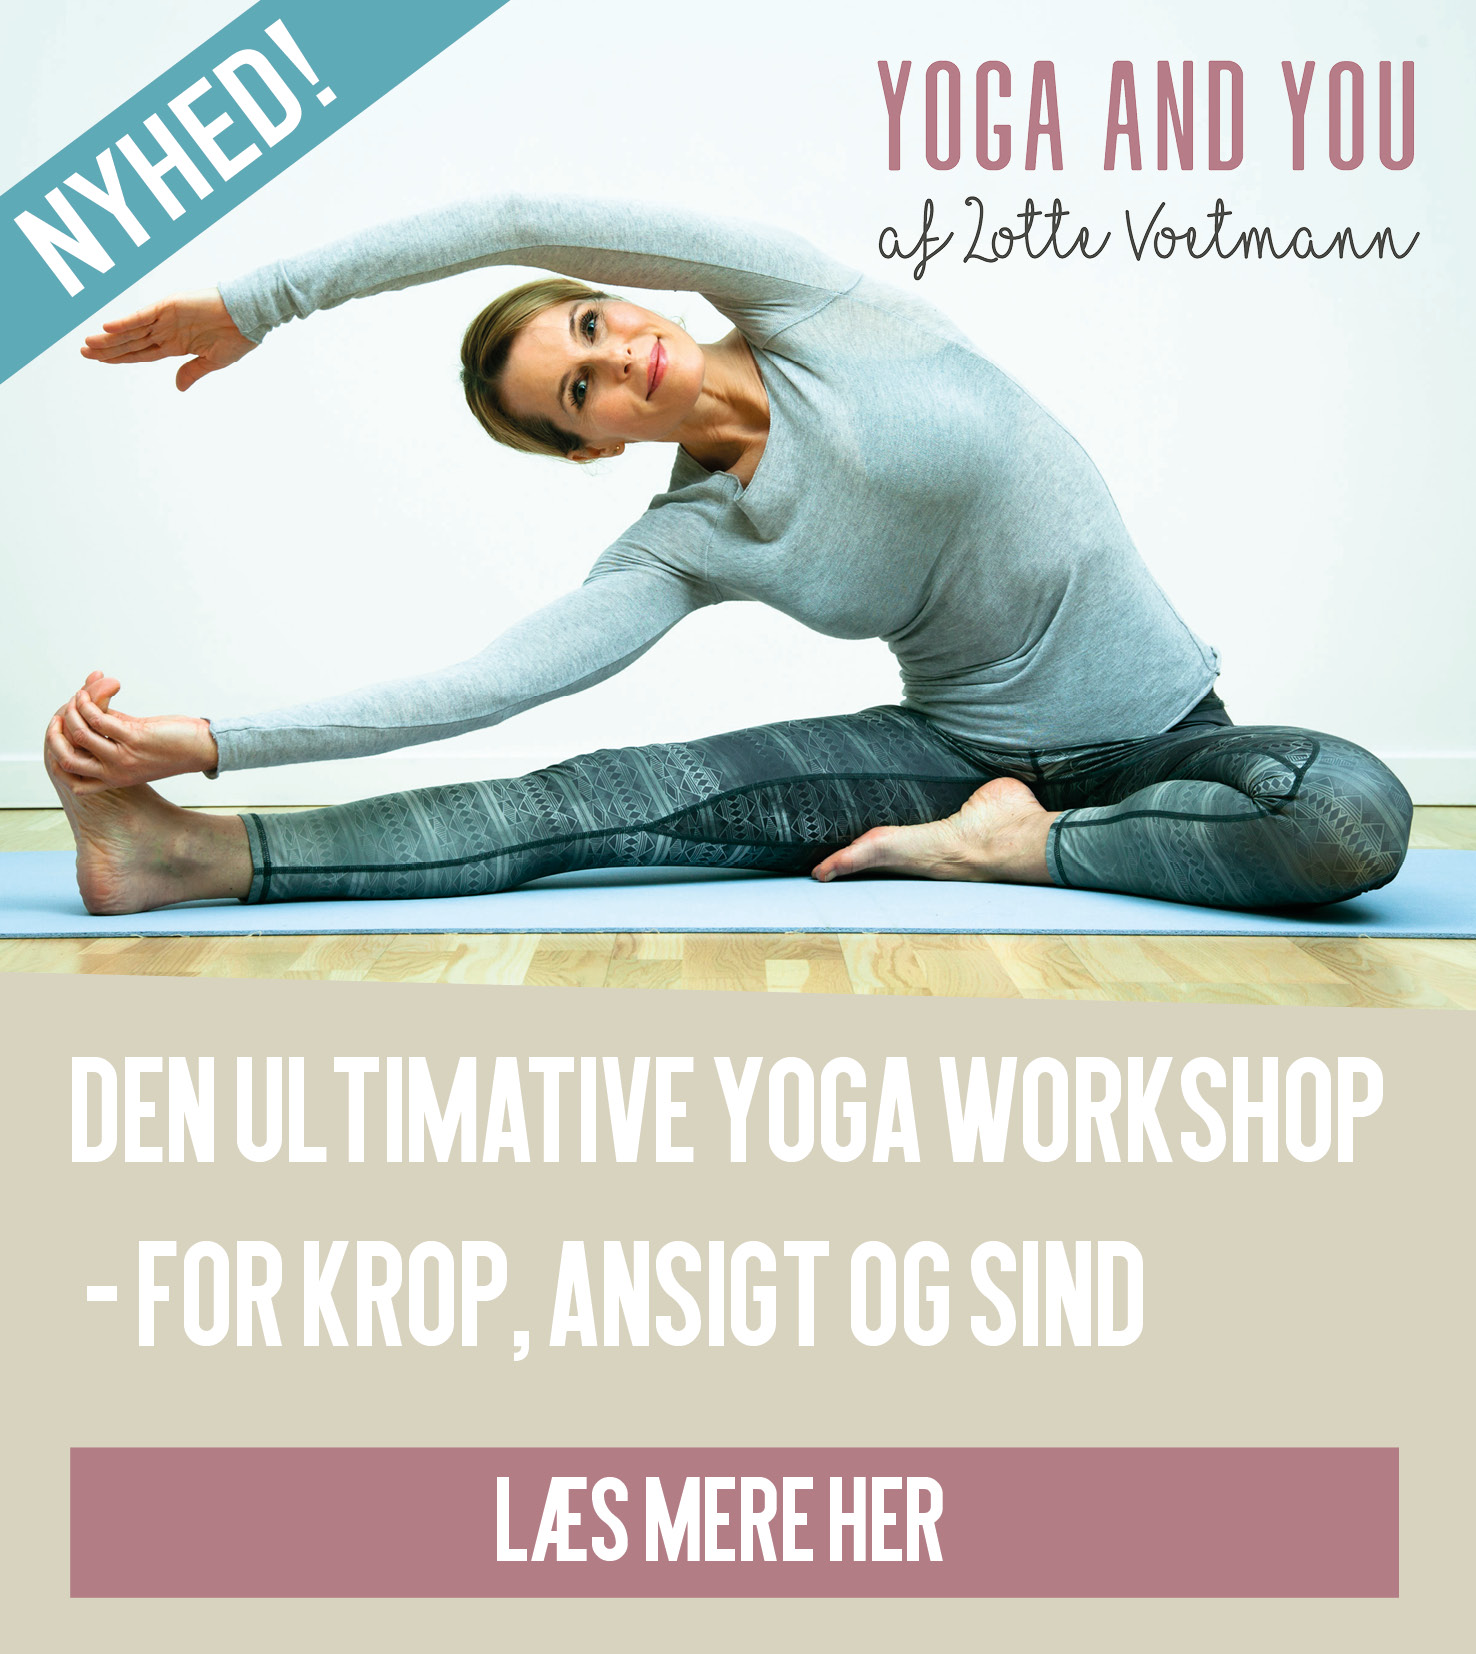 Yoga and you mobil banner